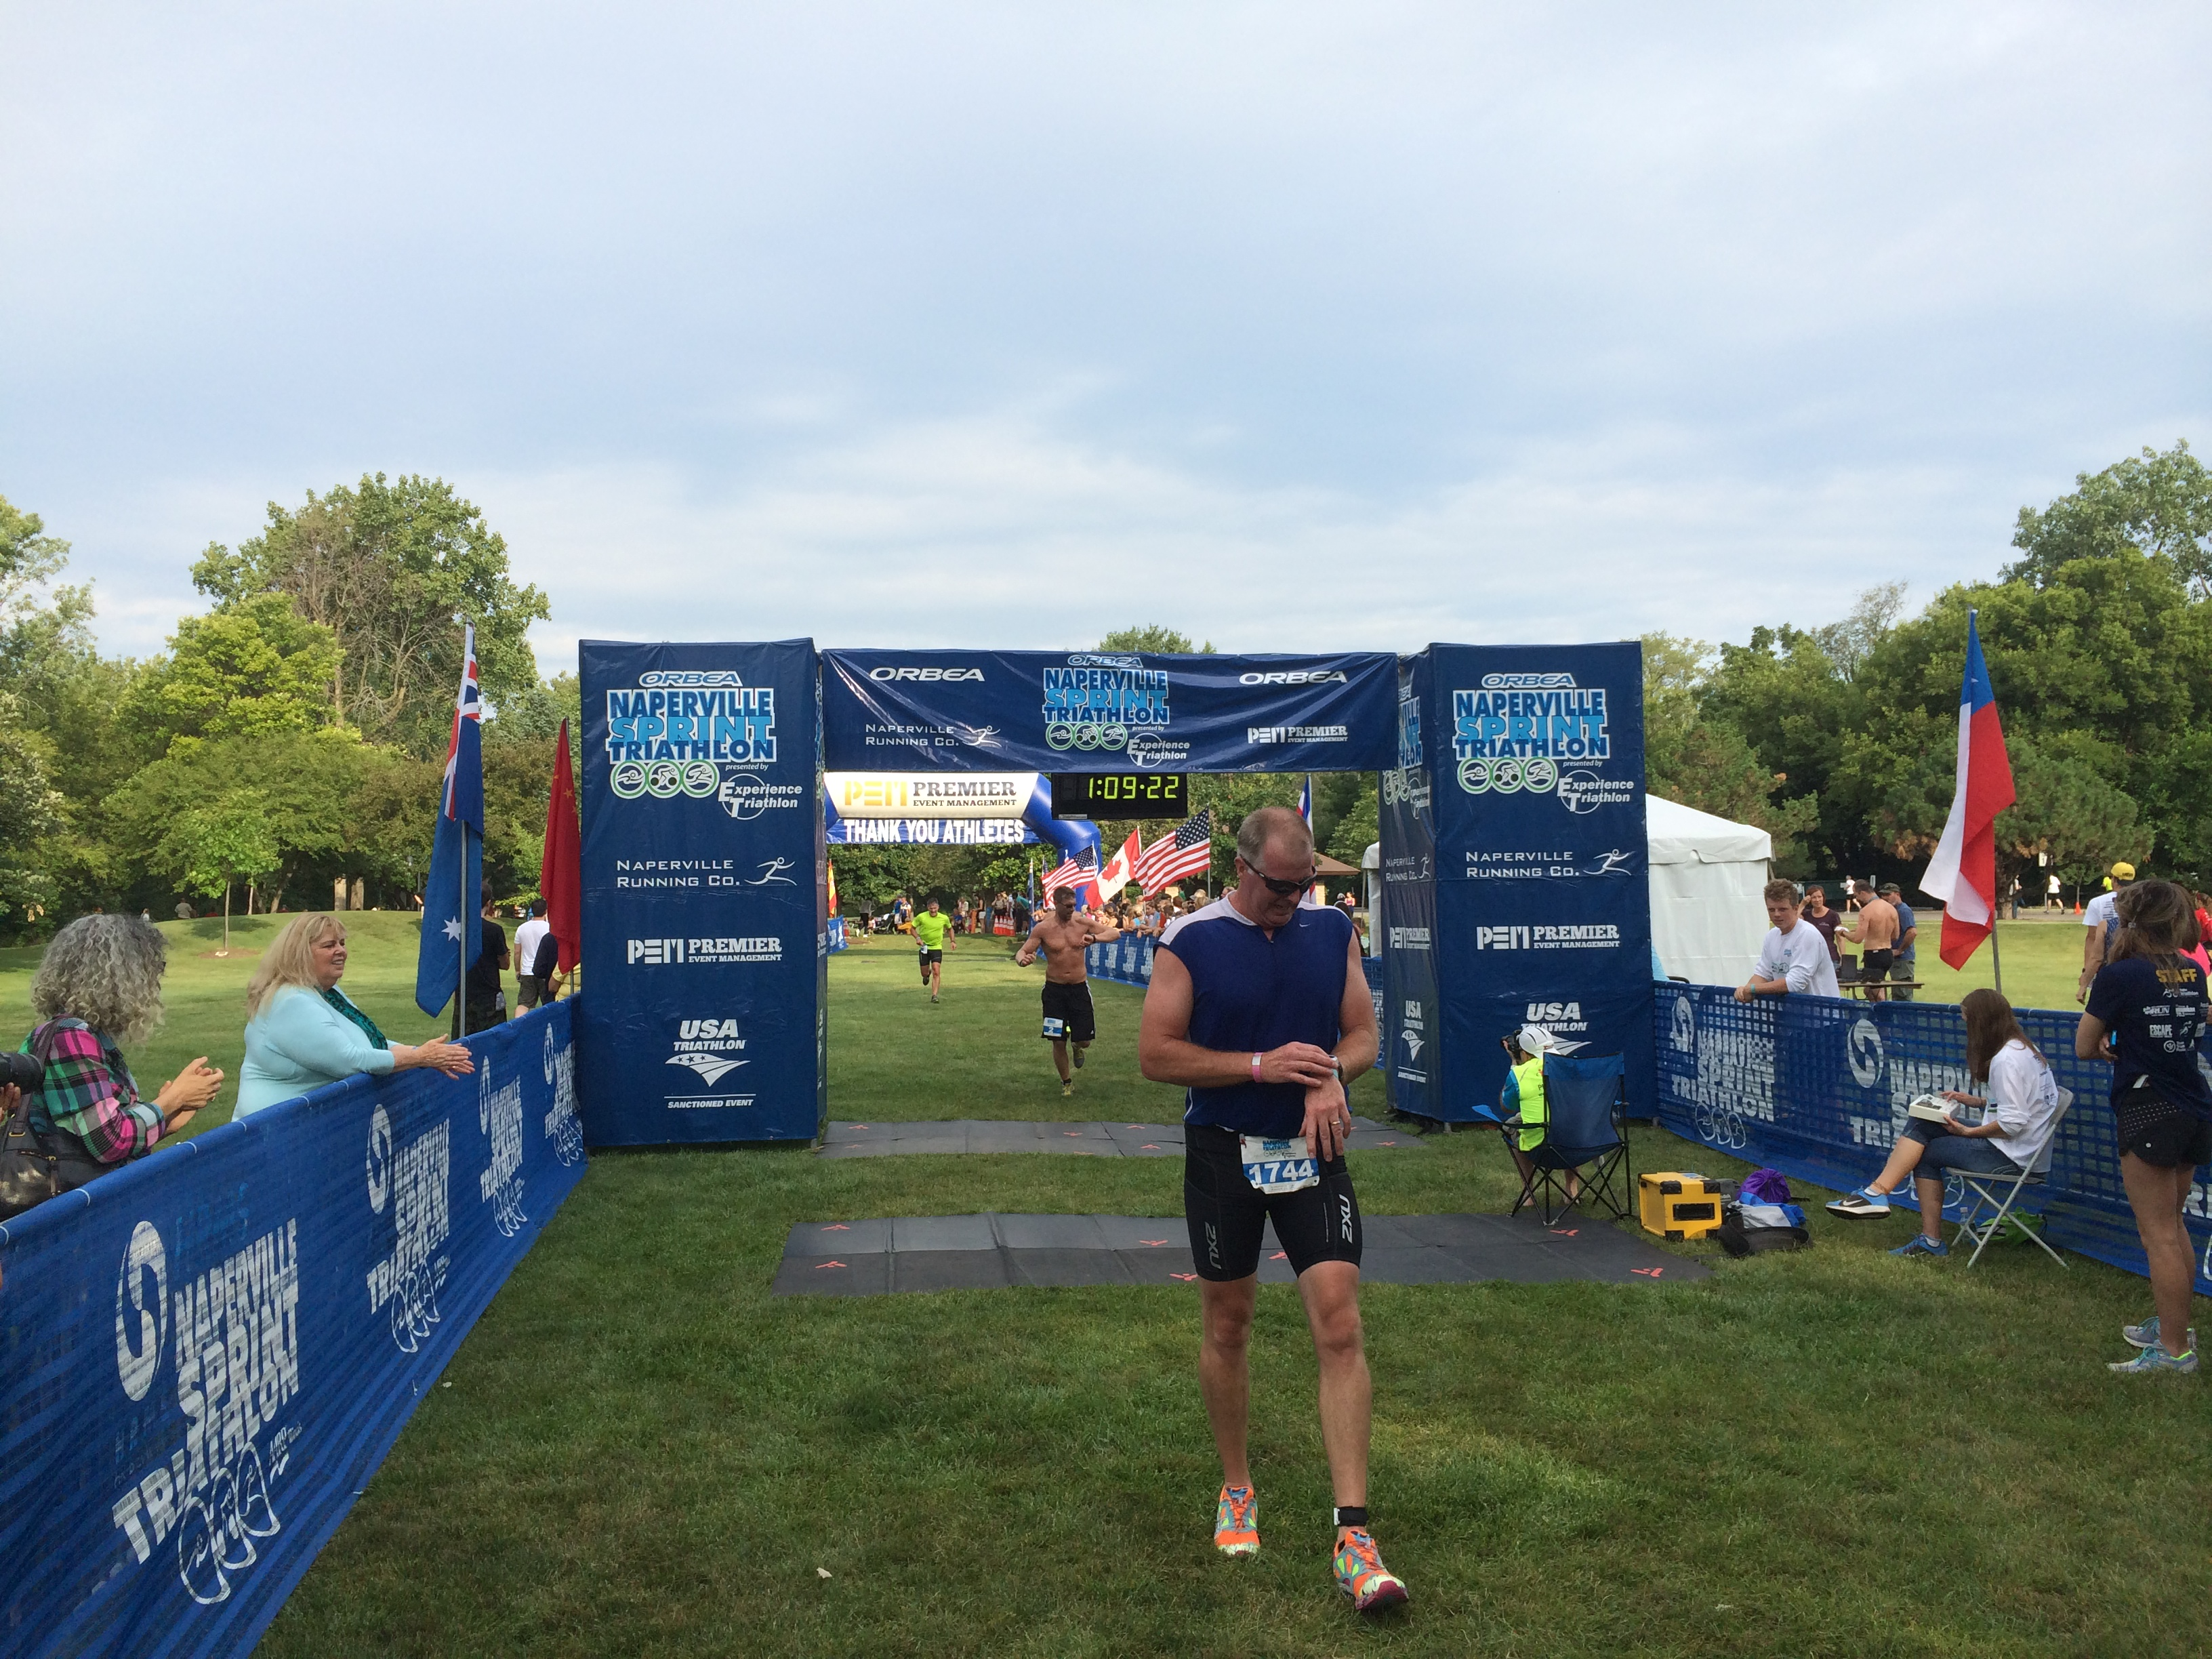 Naperville Sprint Triathlon Race Results